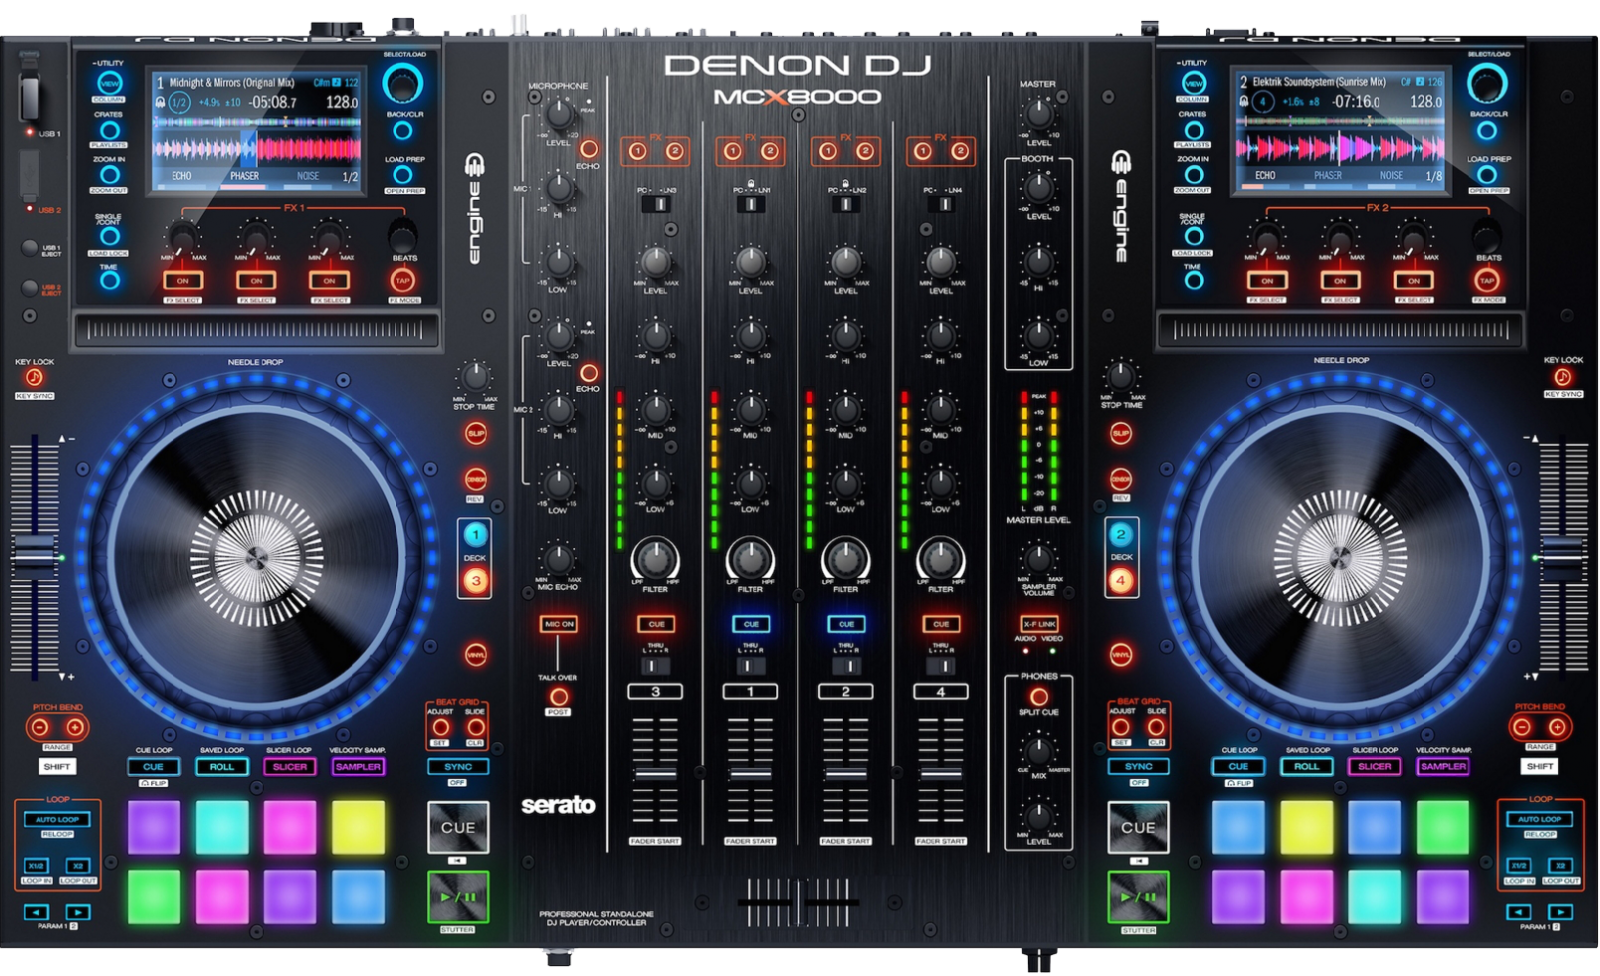 Denon DJ MCX8000 - Getting Rid of Freezing, Distortion, Dropouts and